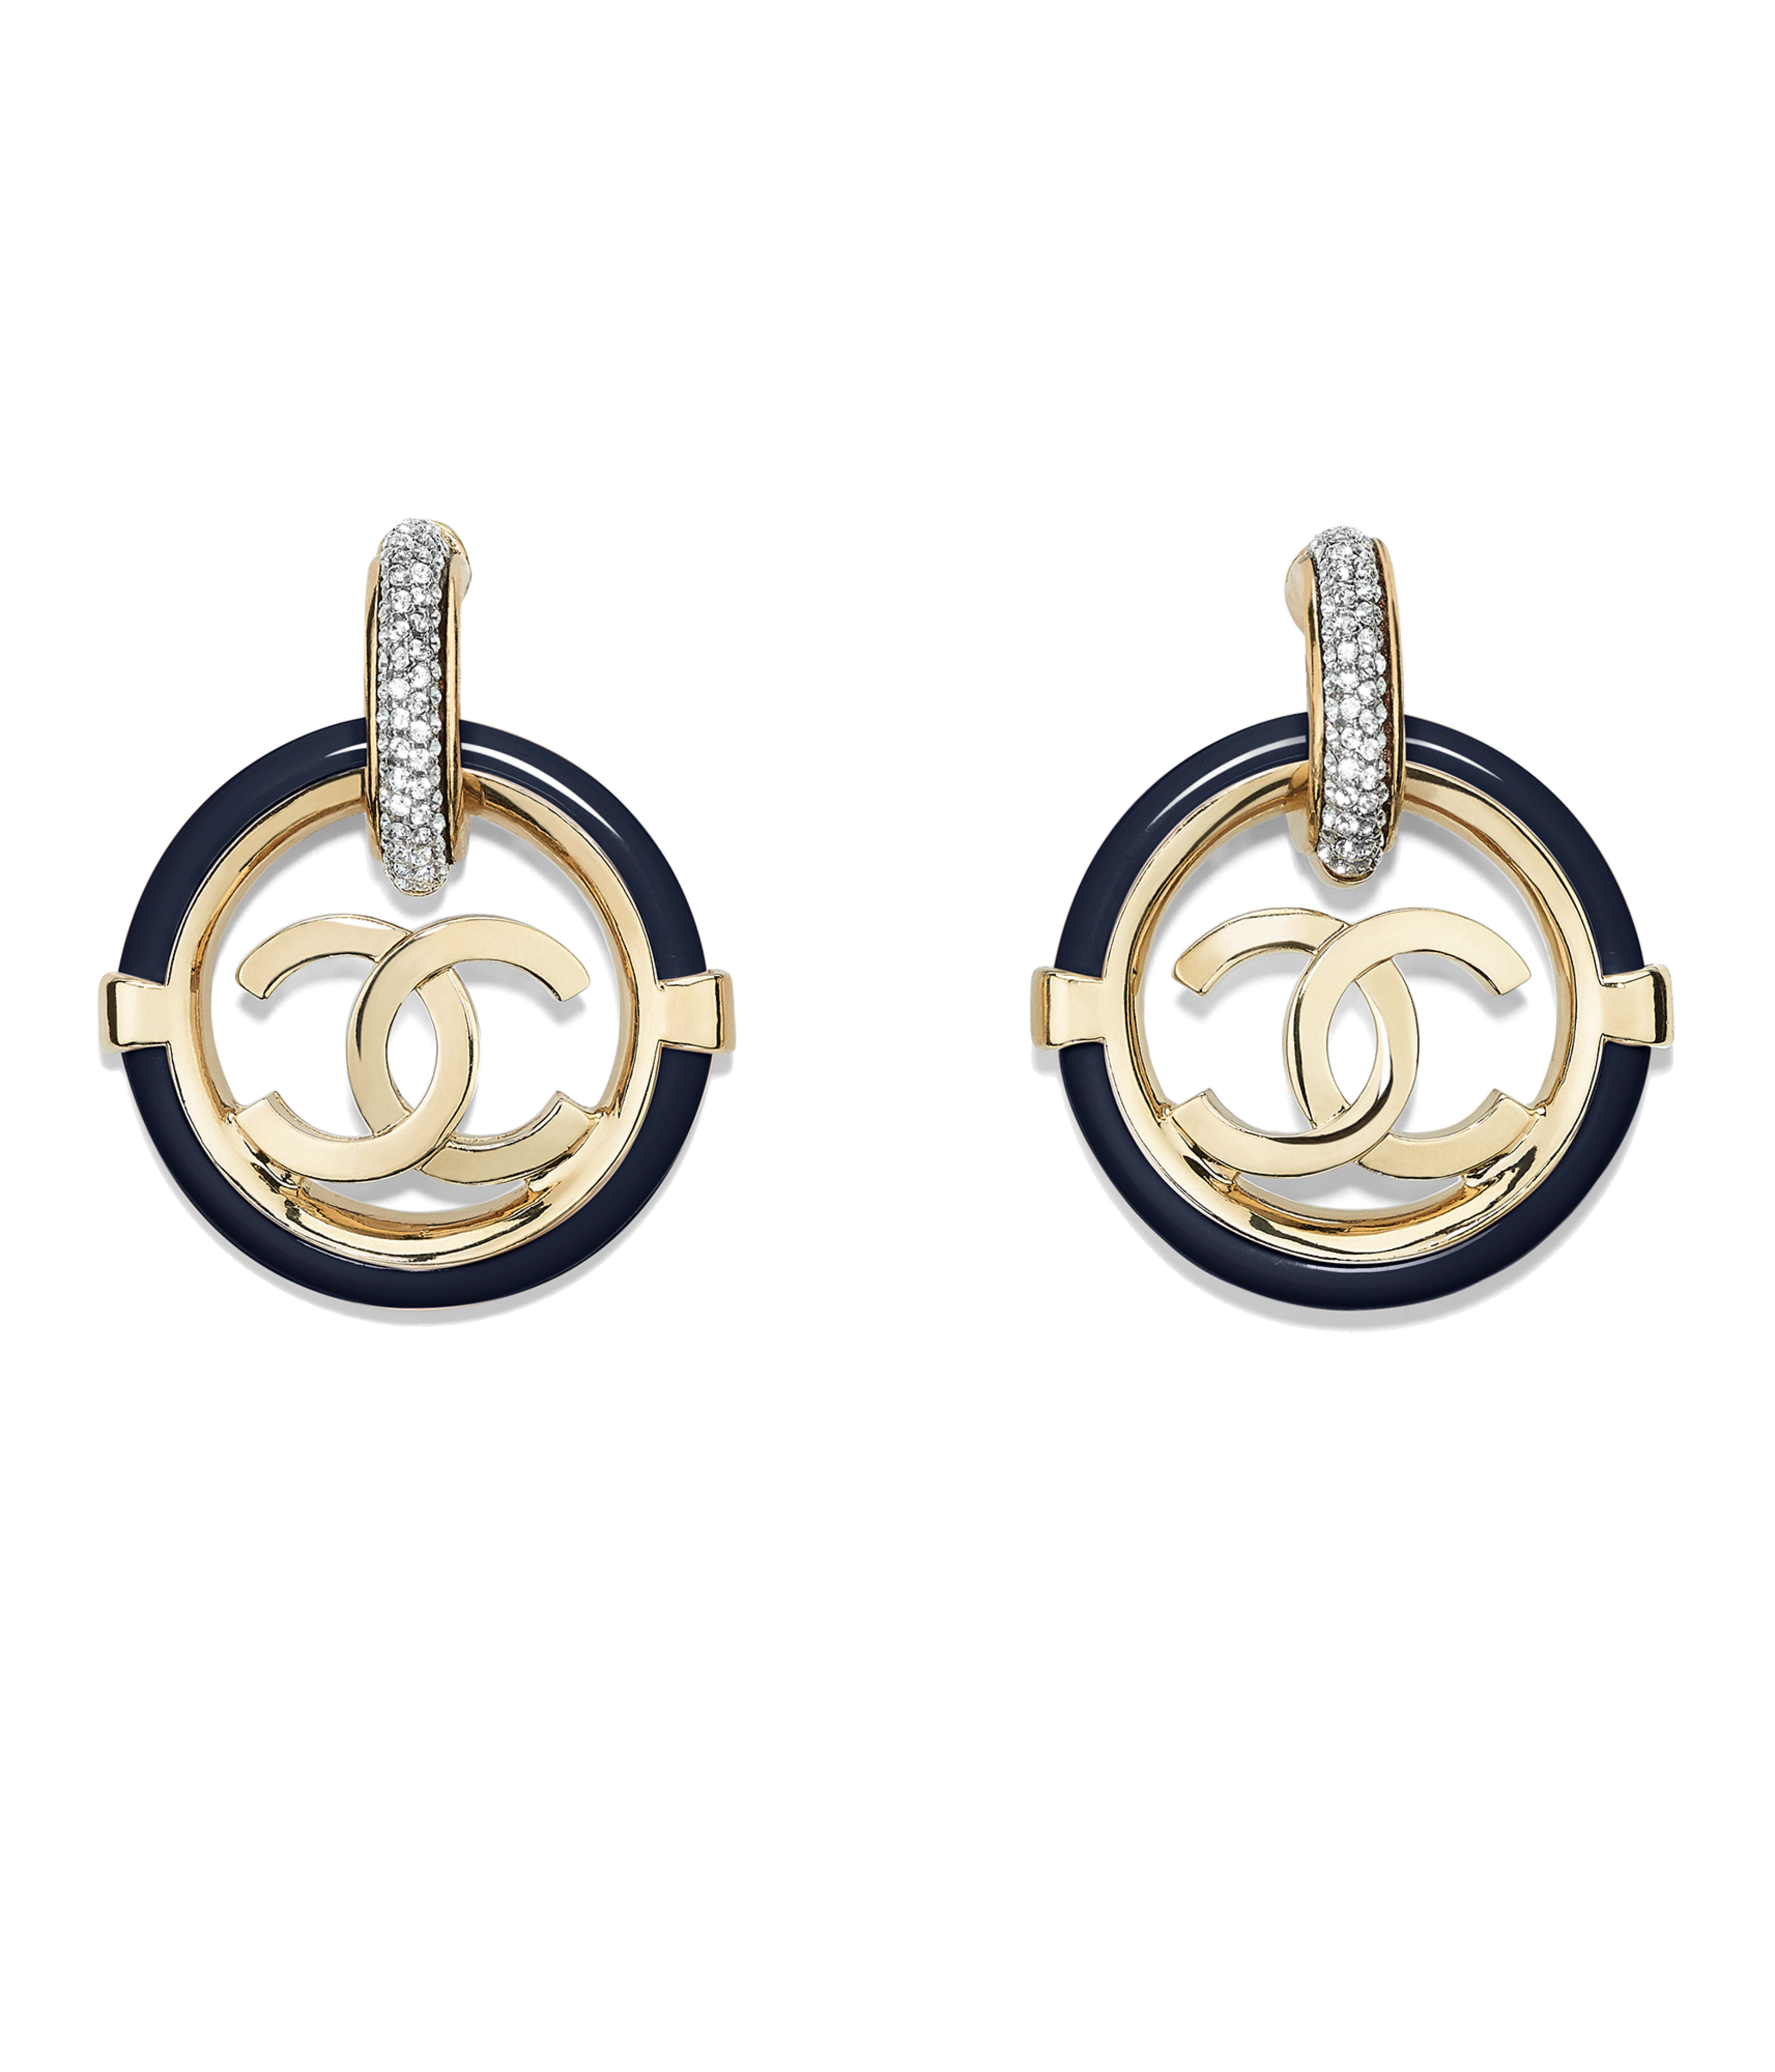 Clip On Earrings Metal Resin Str Gold Crystal Navy Blue Ref Ab1307y47633z9075